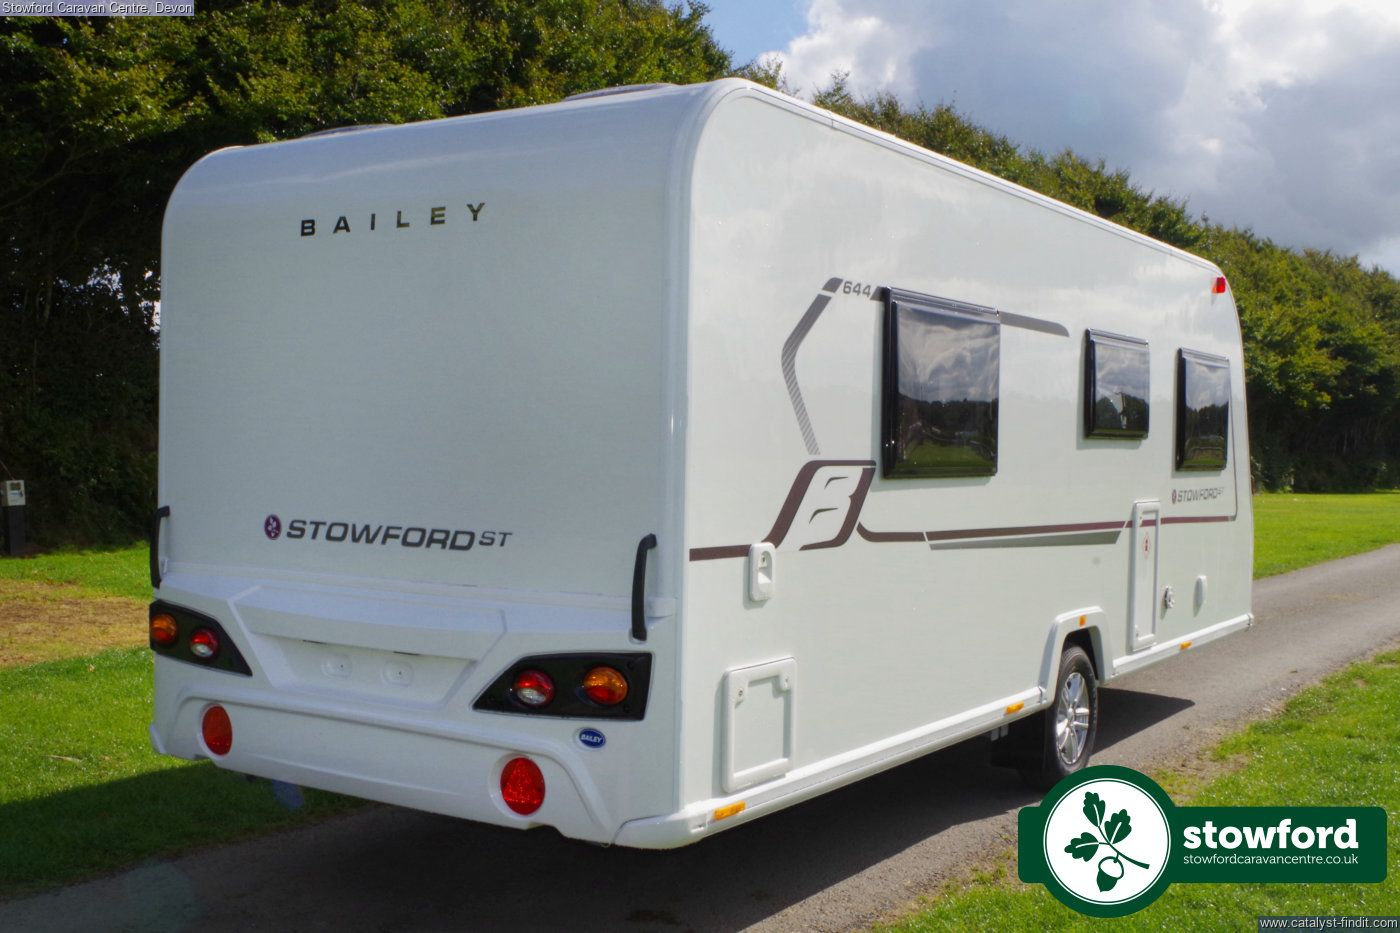 Bailey Stowford ST 644 2019